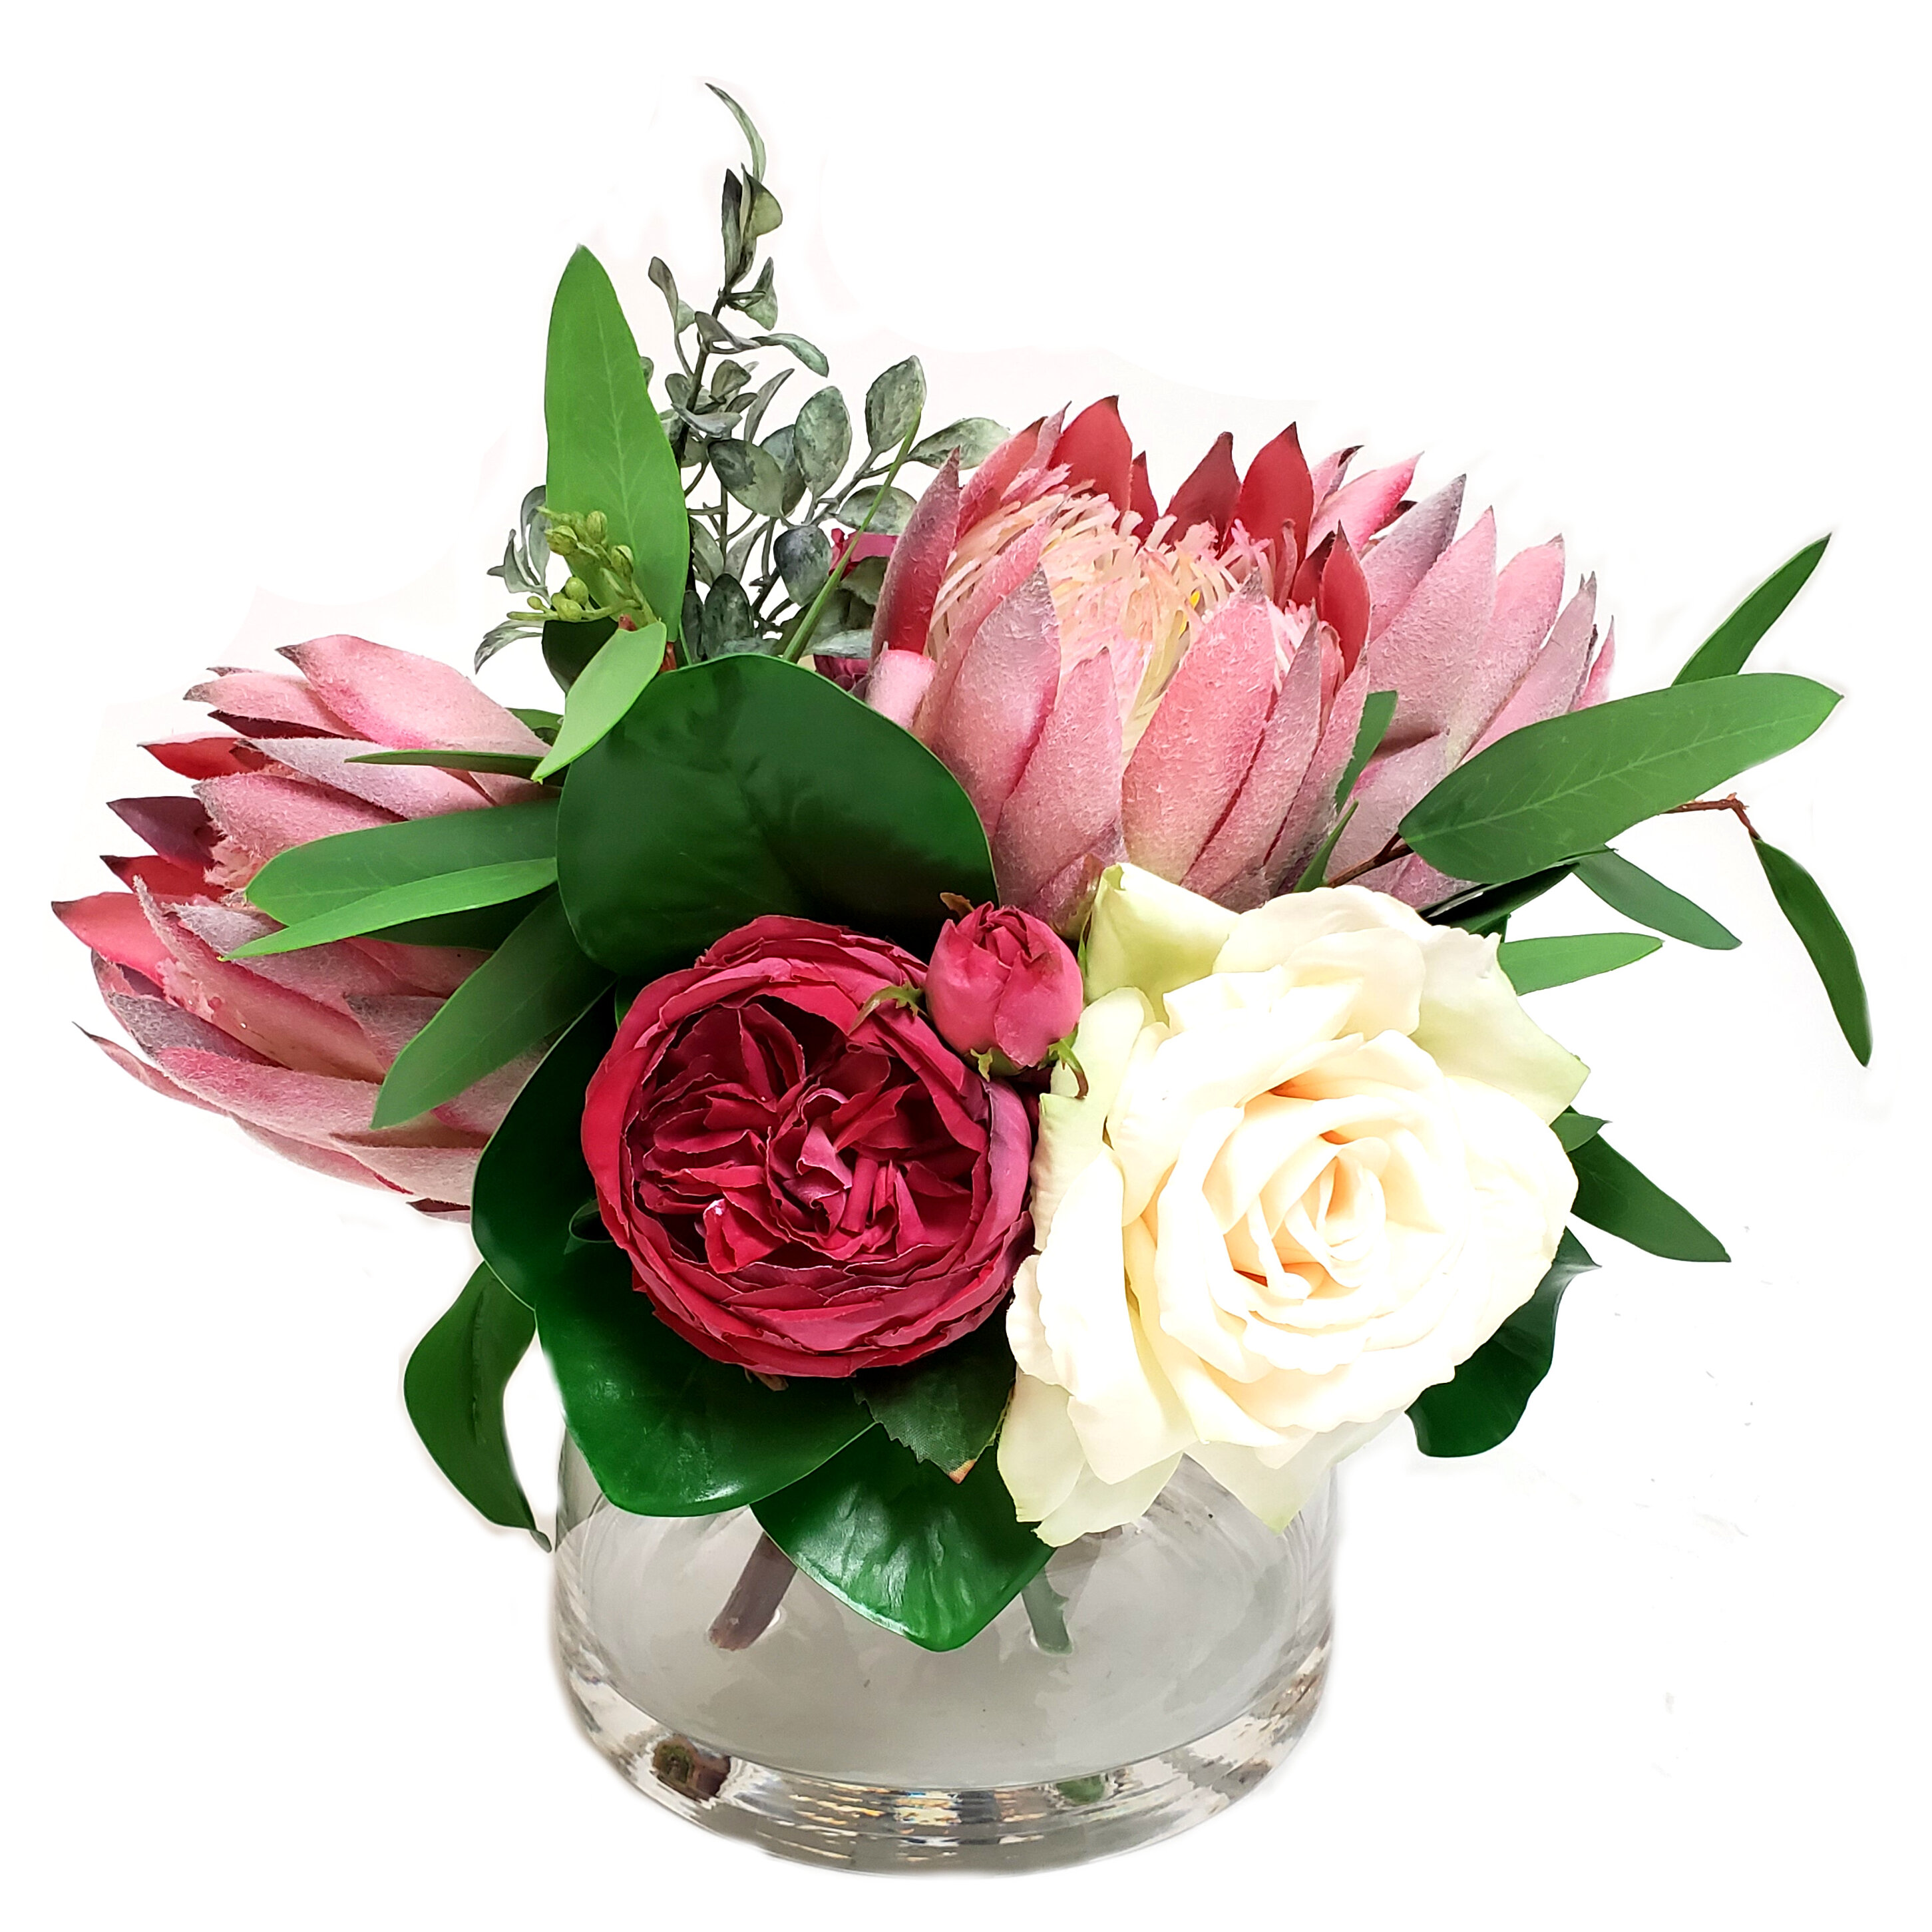 Alcott Hill English Mixed Floral Arrangements And Centerpieces In Vase Wayfair